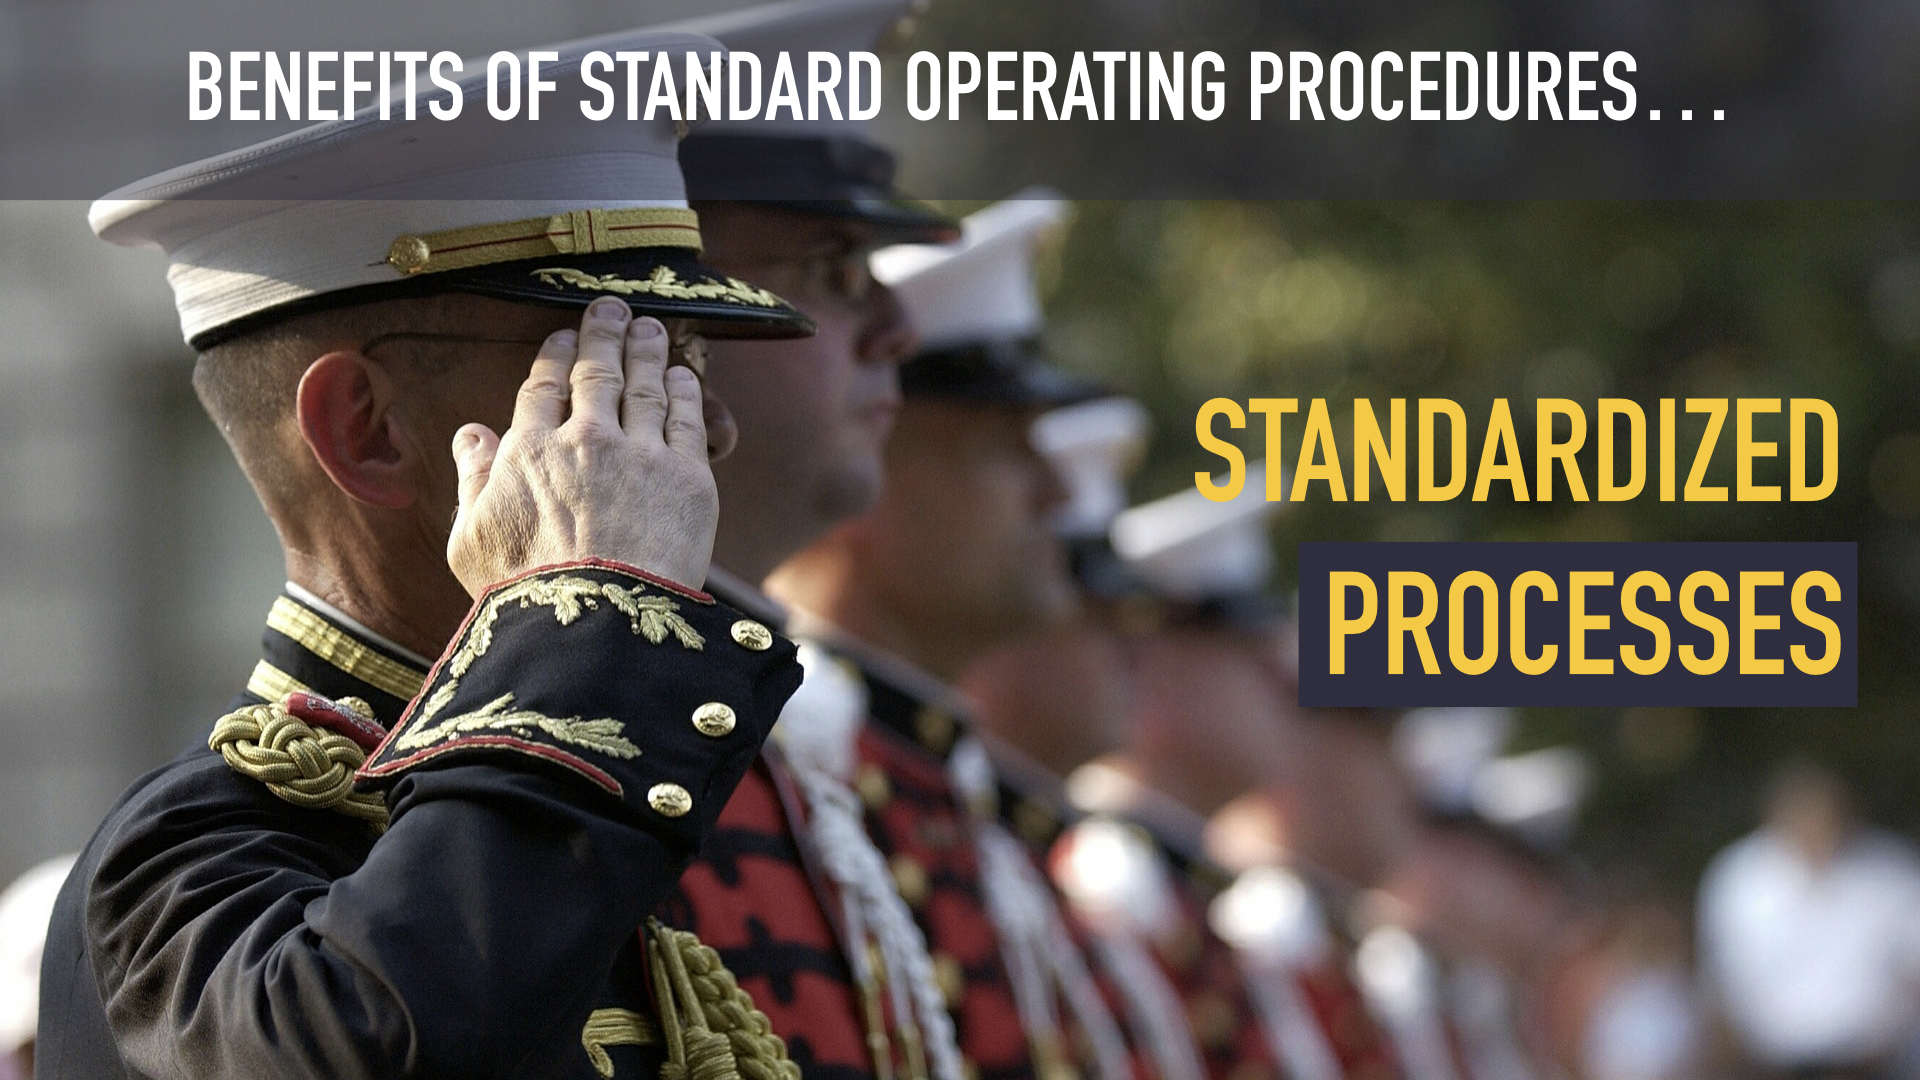 Standardized Processes - The cornerstone of a resilient organization is well-defined procedures. Every function in the organization should be written down in standard operating procedures.  Creating an Action Plan for your business processes supercharges your SOPs to be an engine of excellence in your organization.